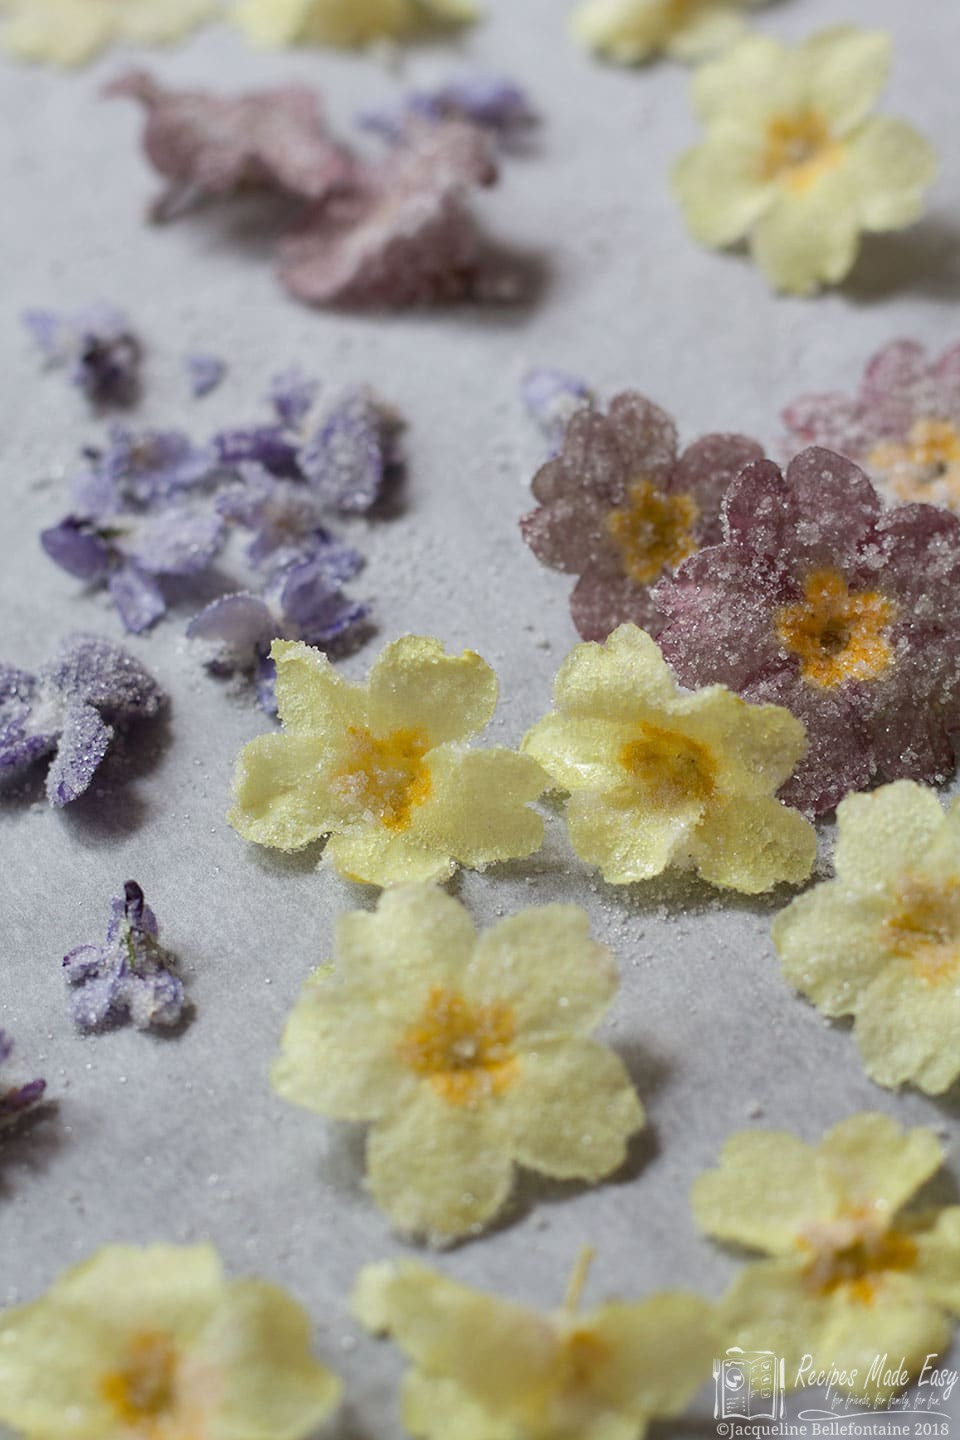 How to crystalise flowers, by Recipes Made Easy